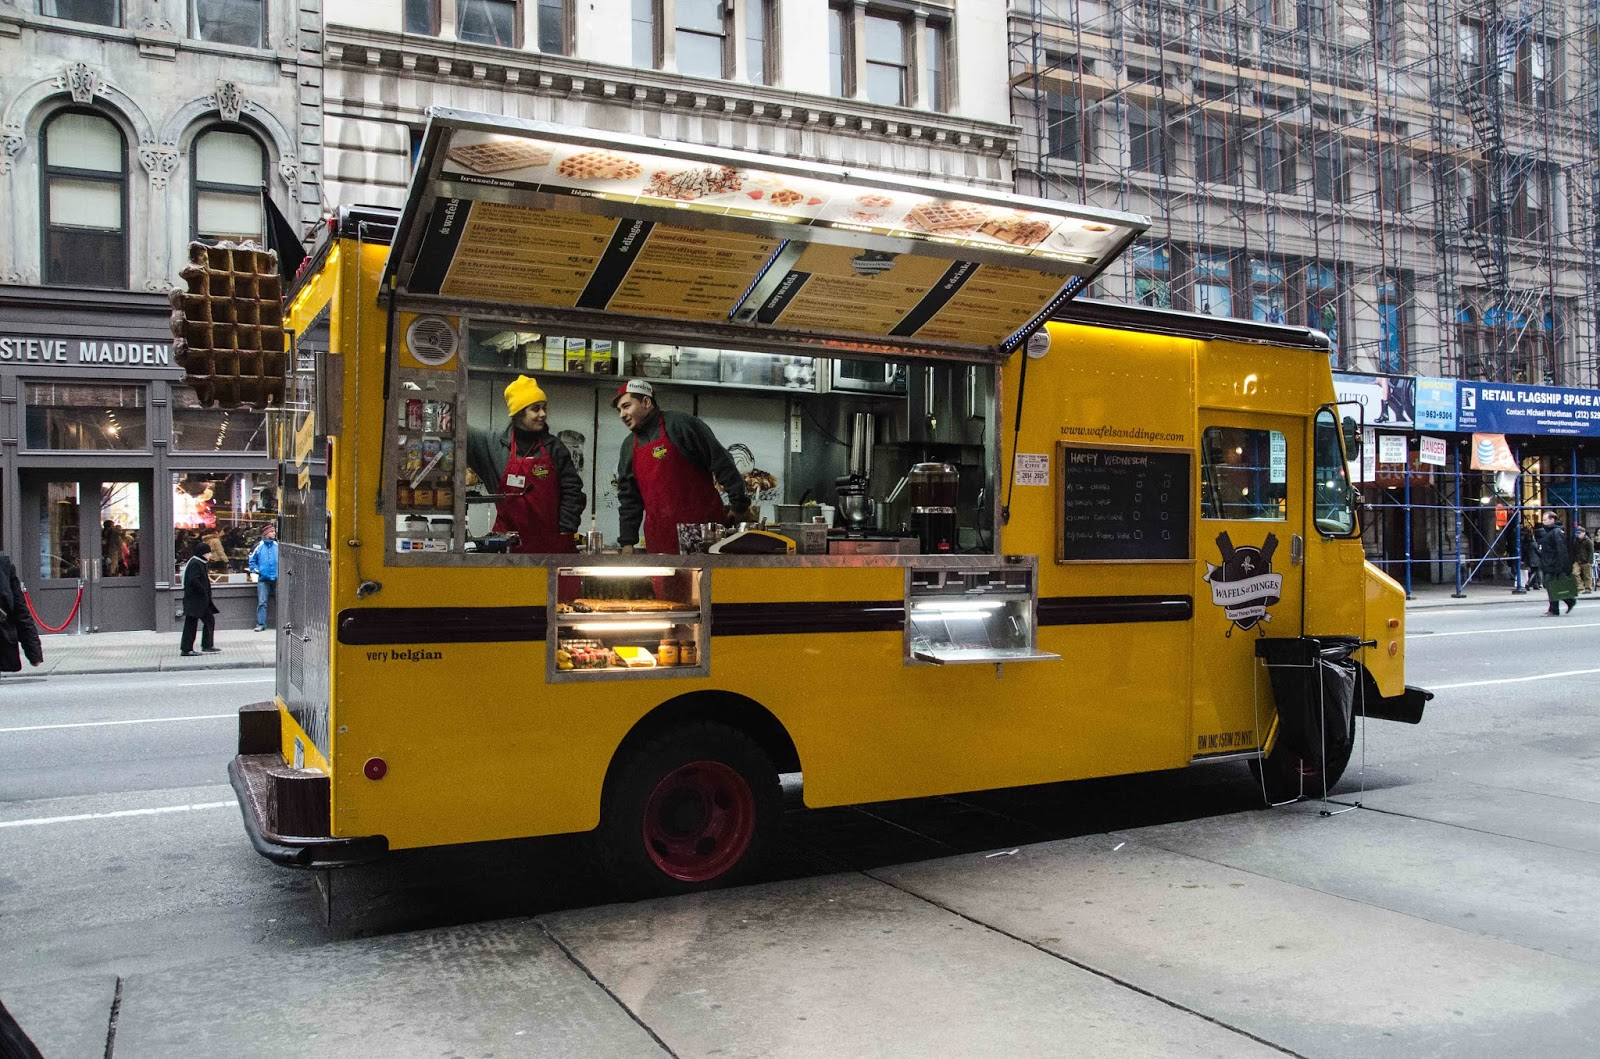 Basically wafels dinges are these yellow food trucks